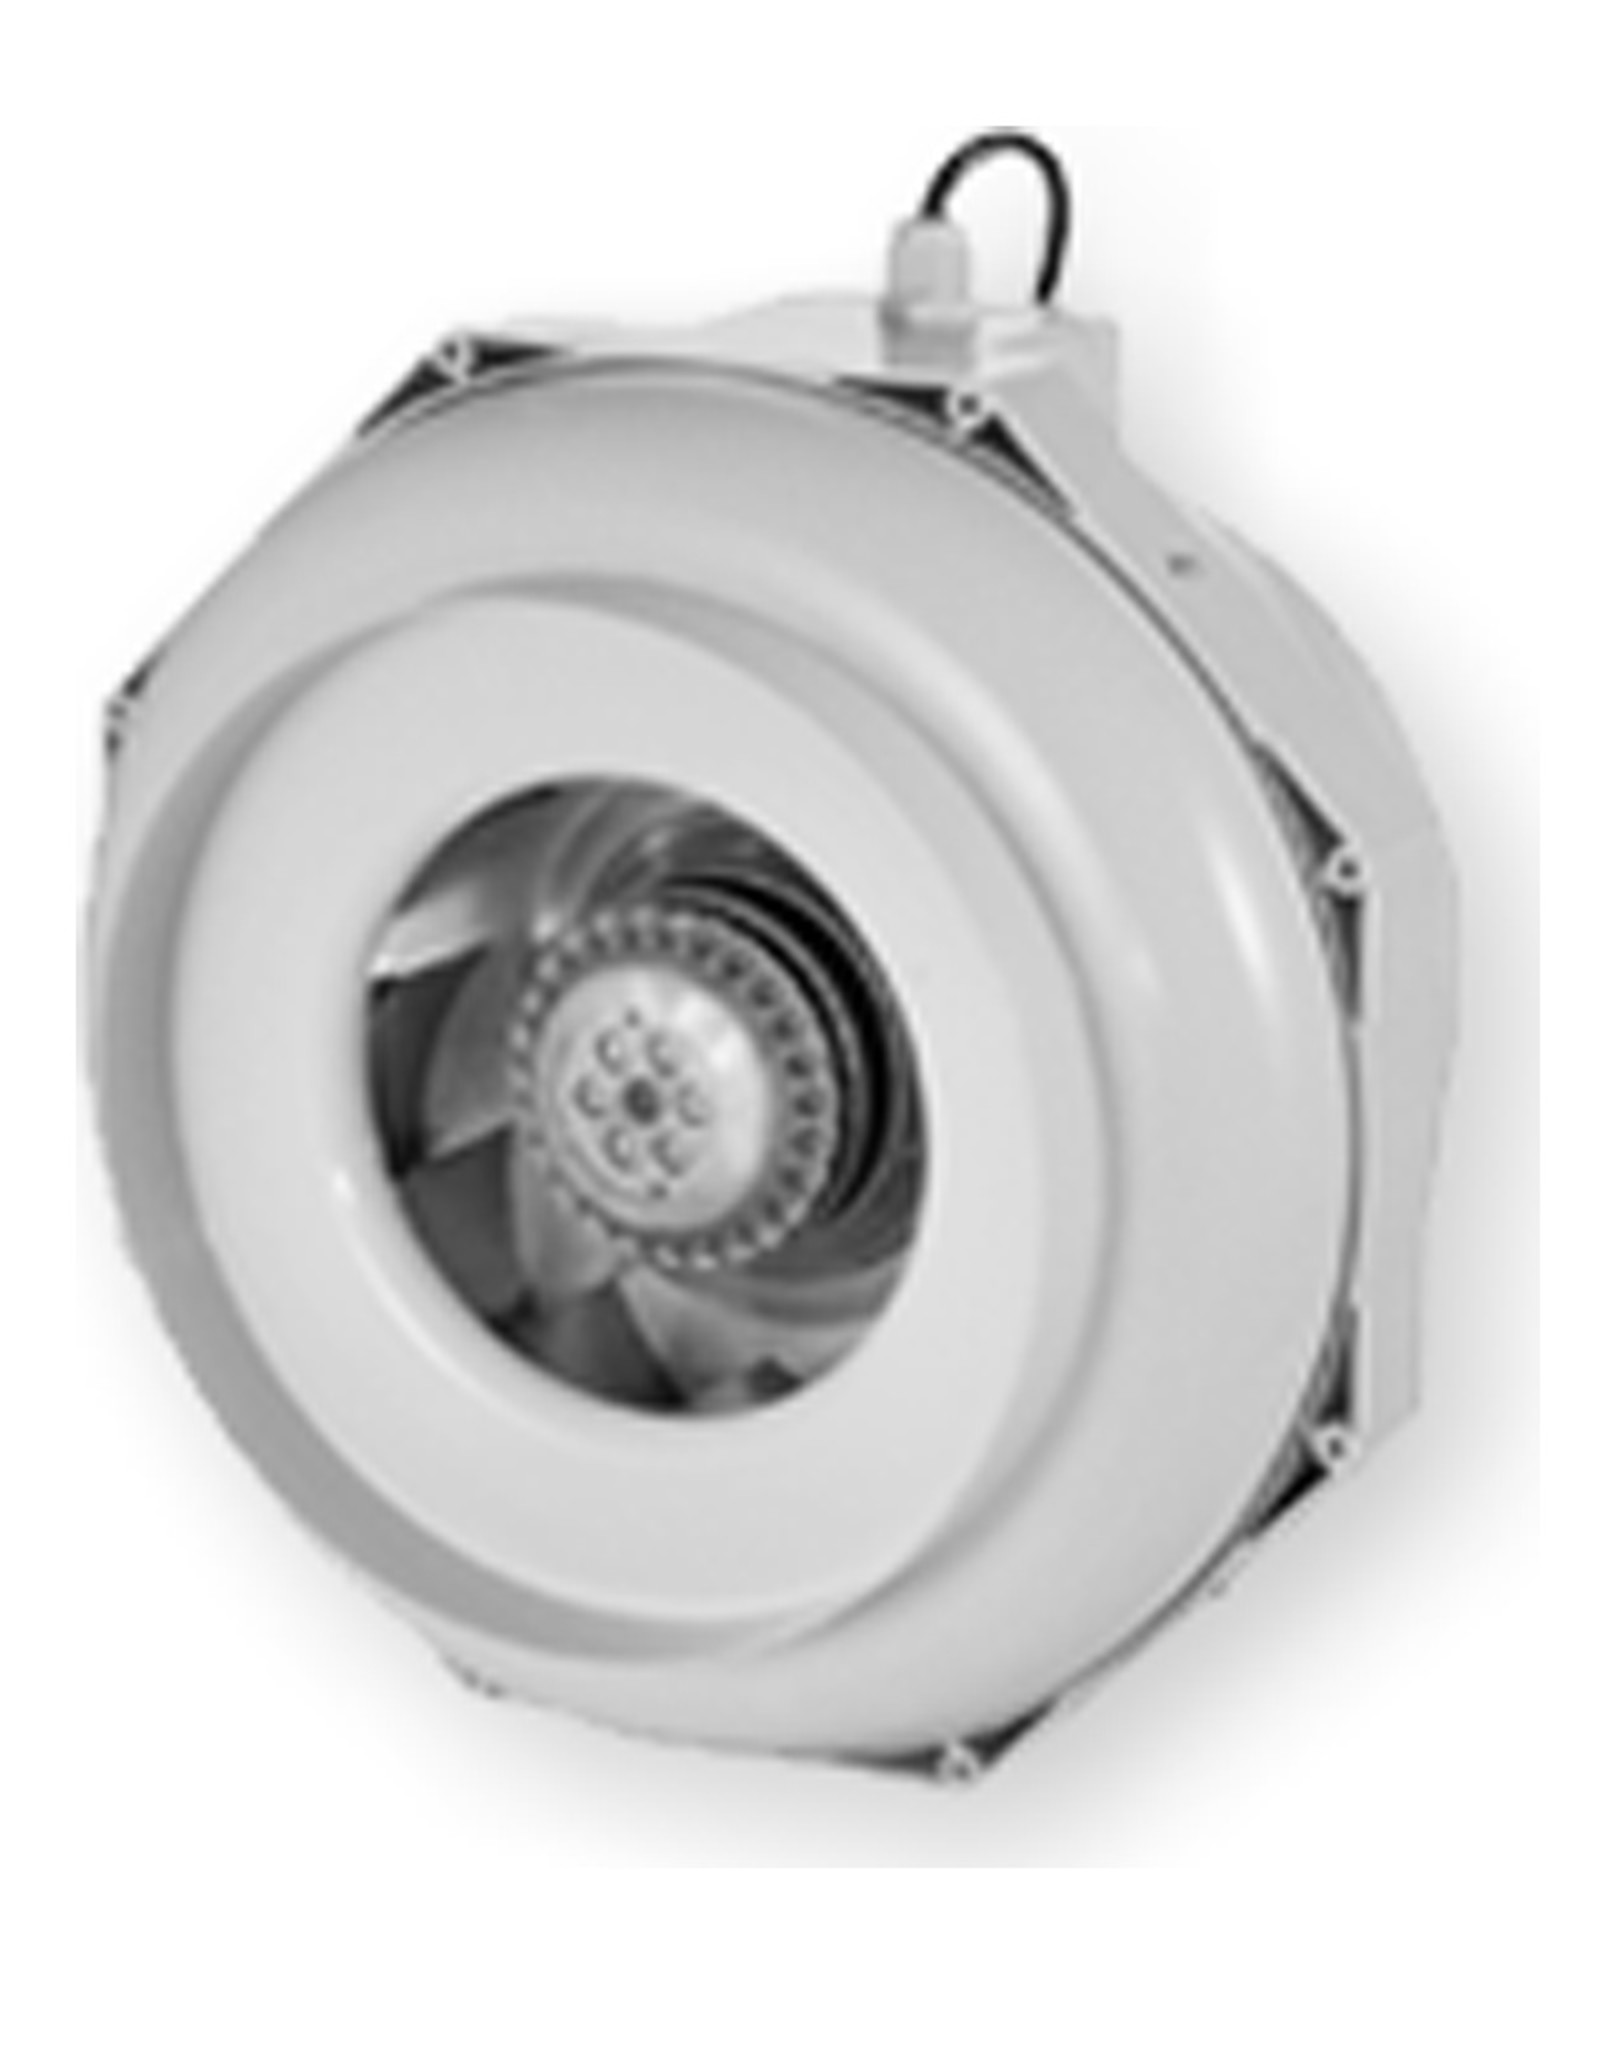 CAN CAN FAN RKW 160L